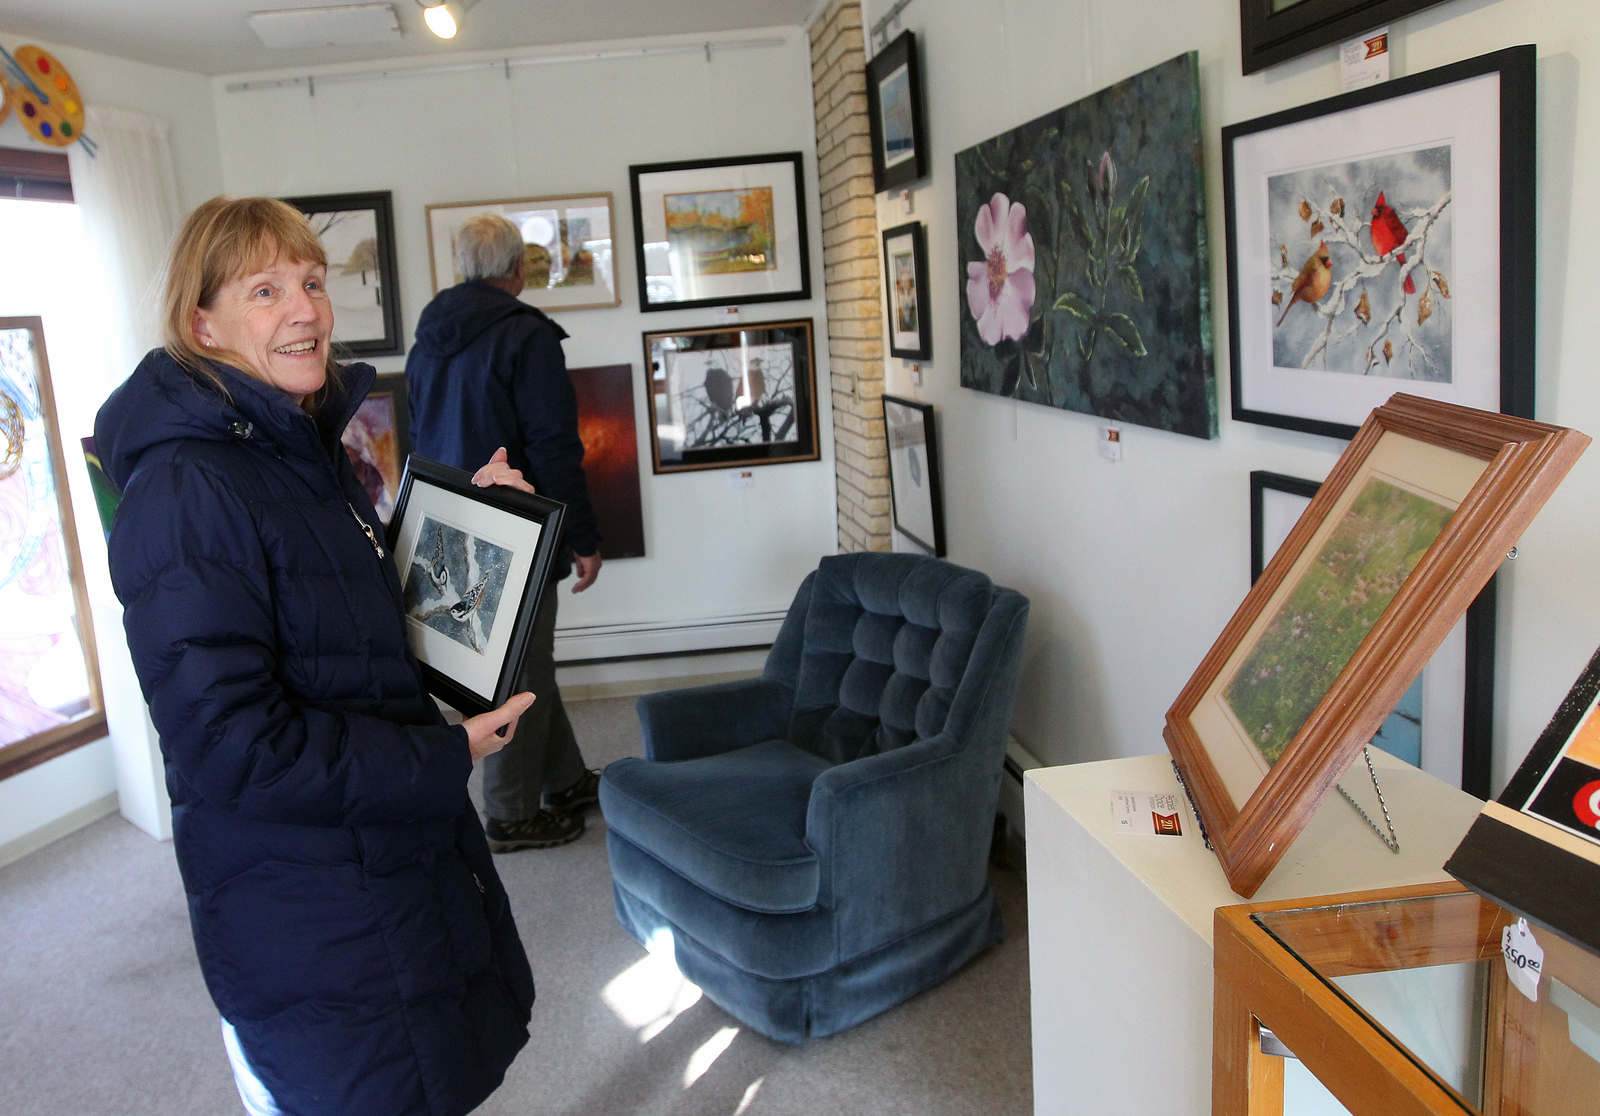 Candace H. Johnson-For Shaw Media Betsy and George Schau, of Kenosha, Wis., look at the artwork entered in the People's Choice Exhibition at the Antioch Fine Arts Foundation Art Gallery & Education Center on Route 83 in Antioch. Betsy was holding a piece of artwork by Pat King, of Waukegan, a watercolor titled, Nuthatches, she bought at the gallery.